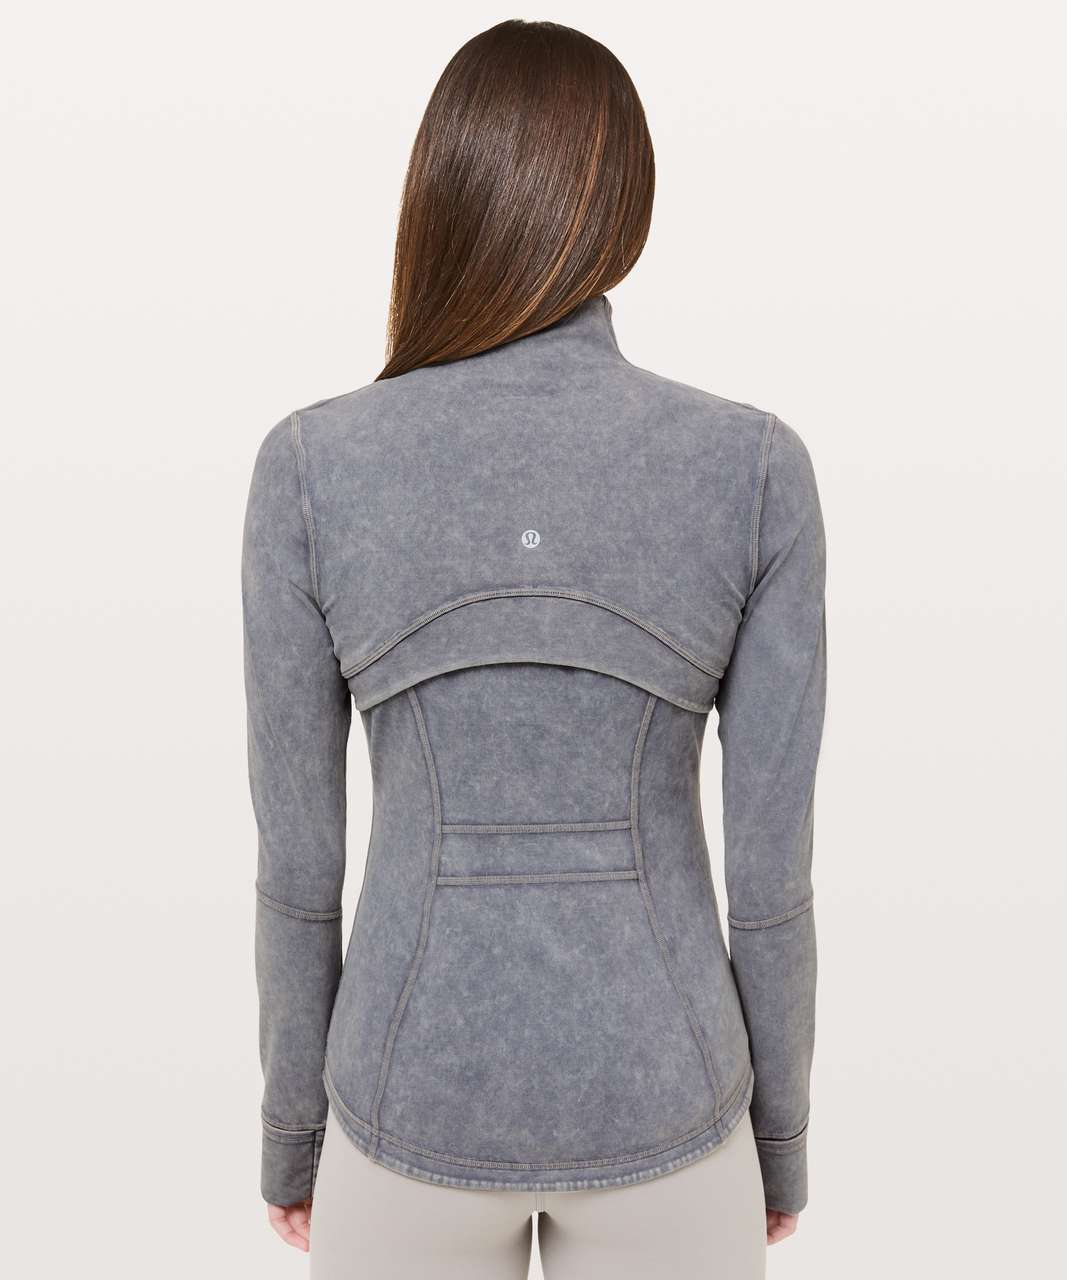 Lululemon Define Jacket *Garment Dye - Washed Luna